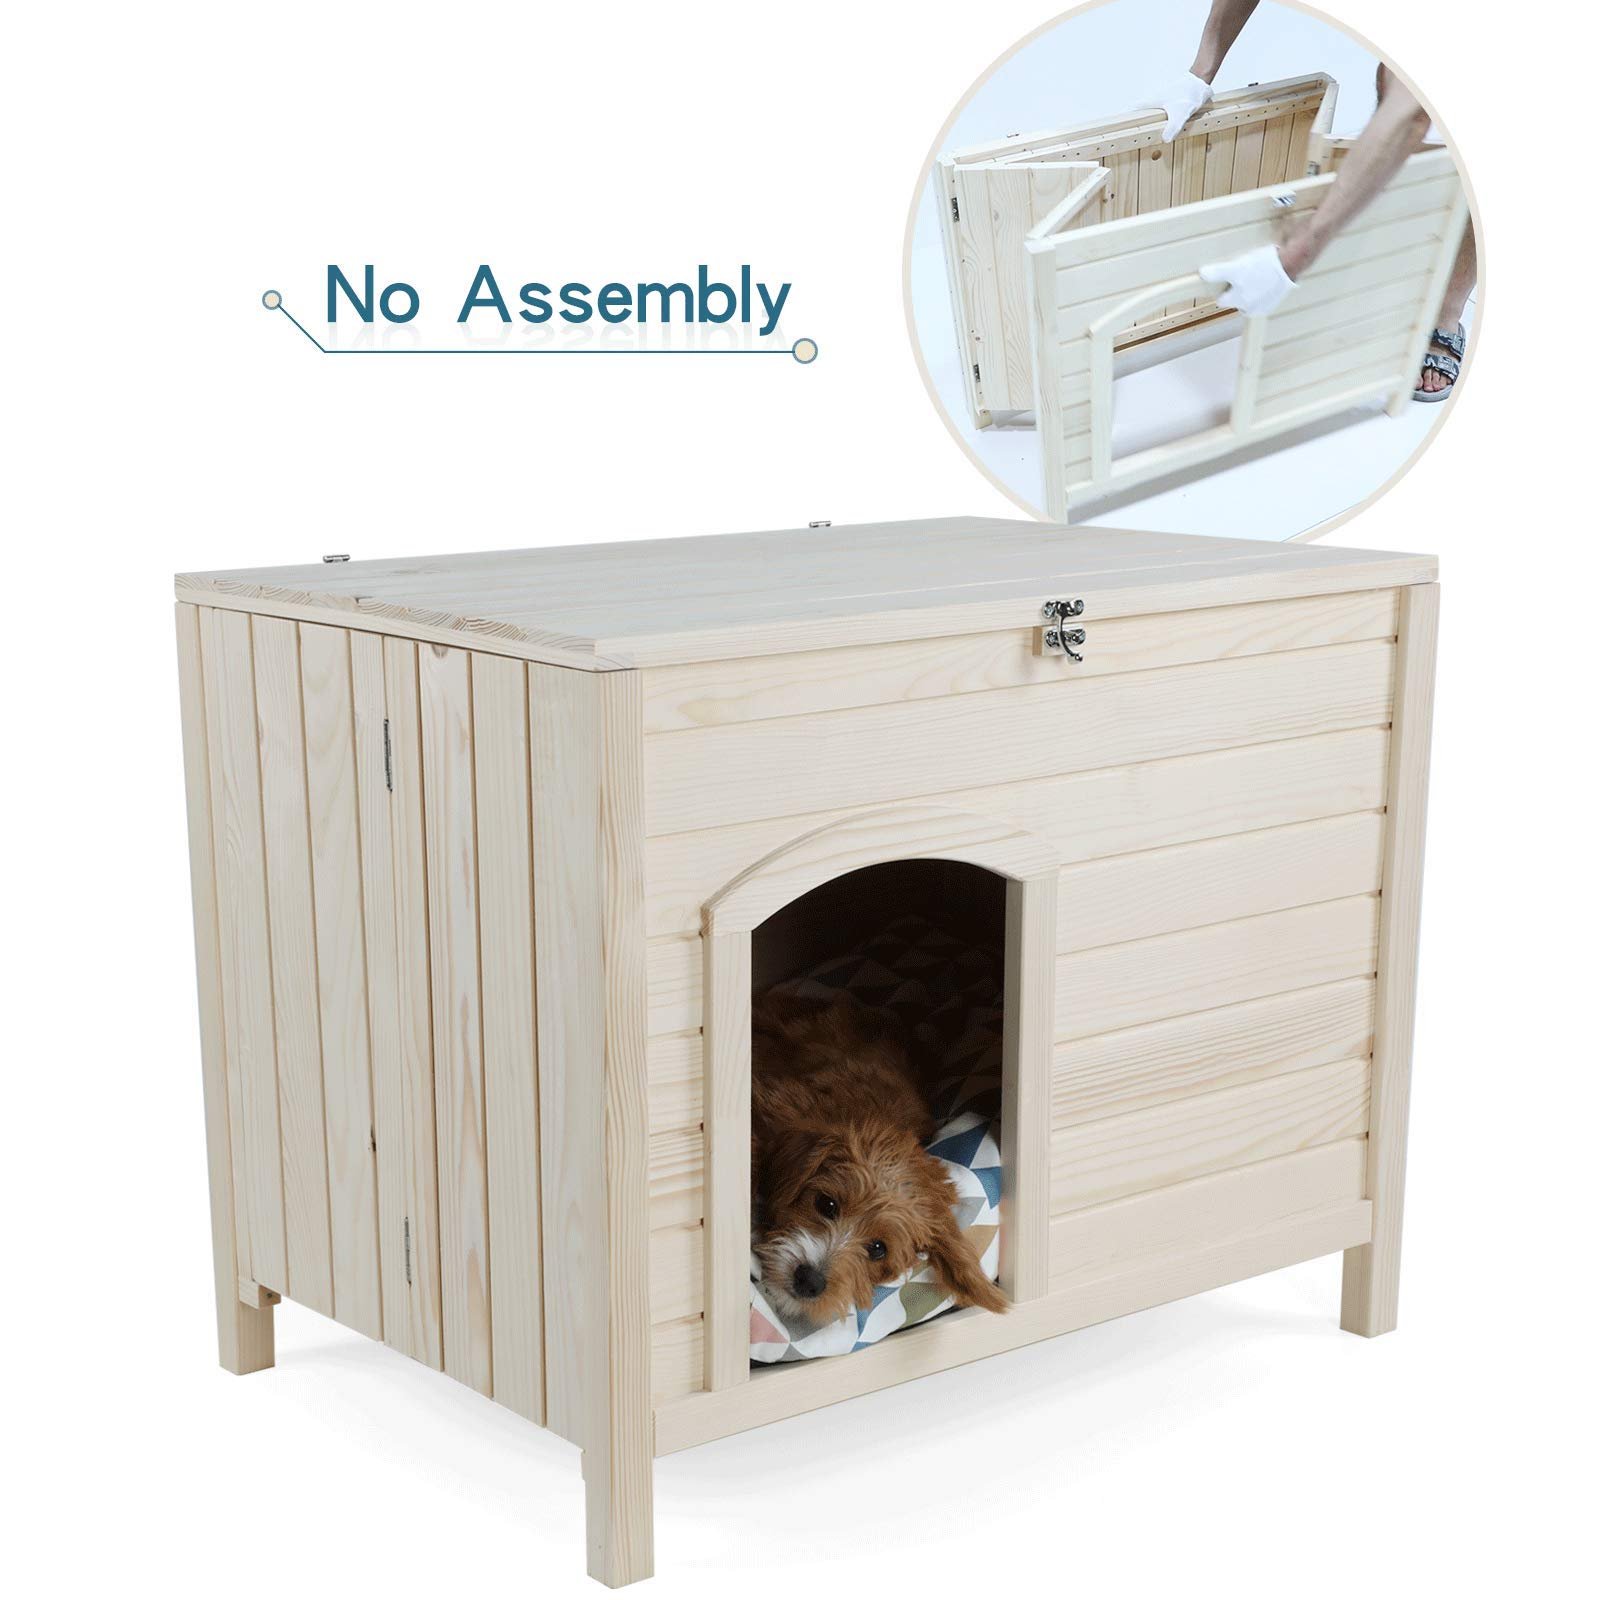 Petsfit Portable Wooden Dog House, No Assemble Required by Petsfit